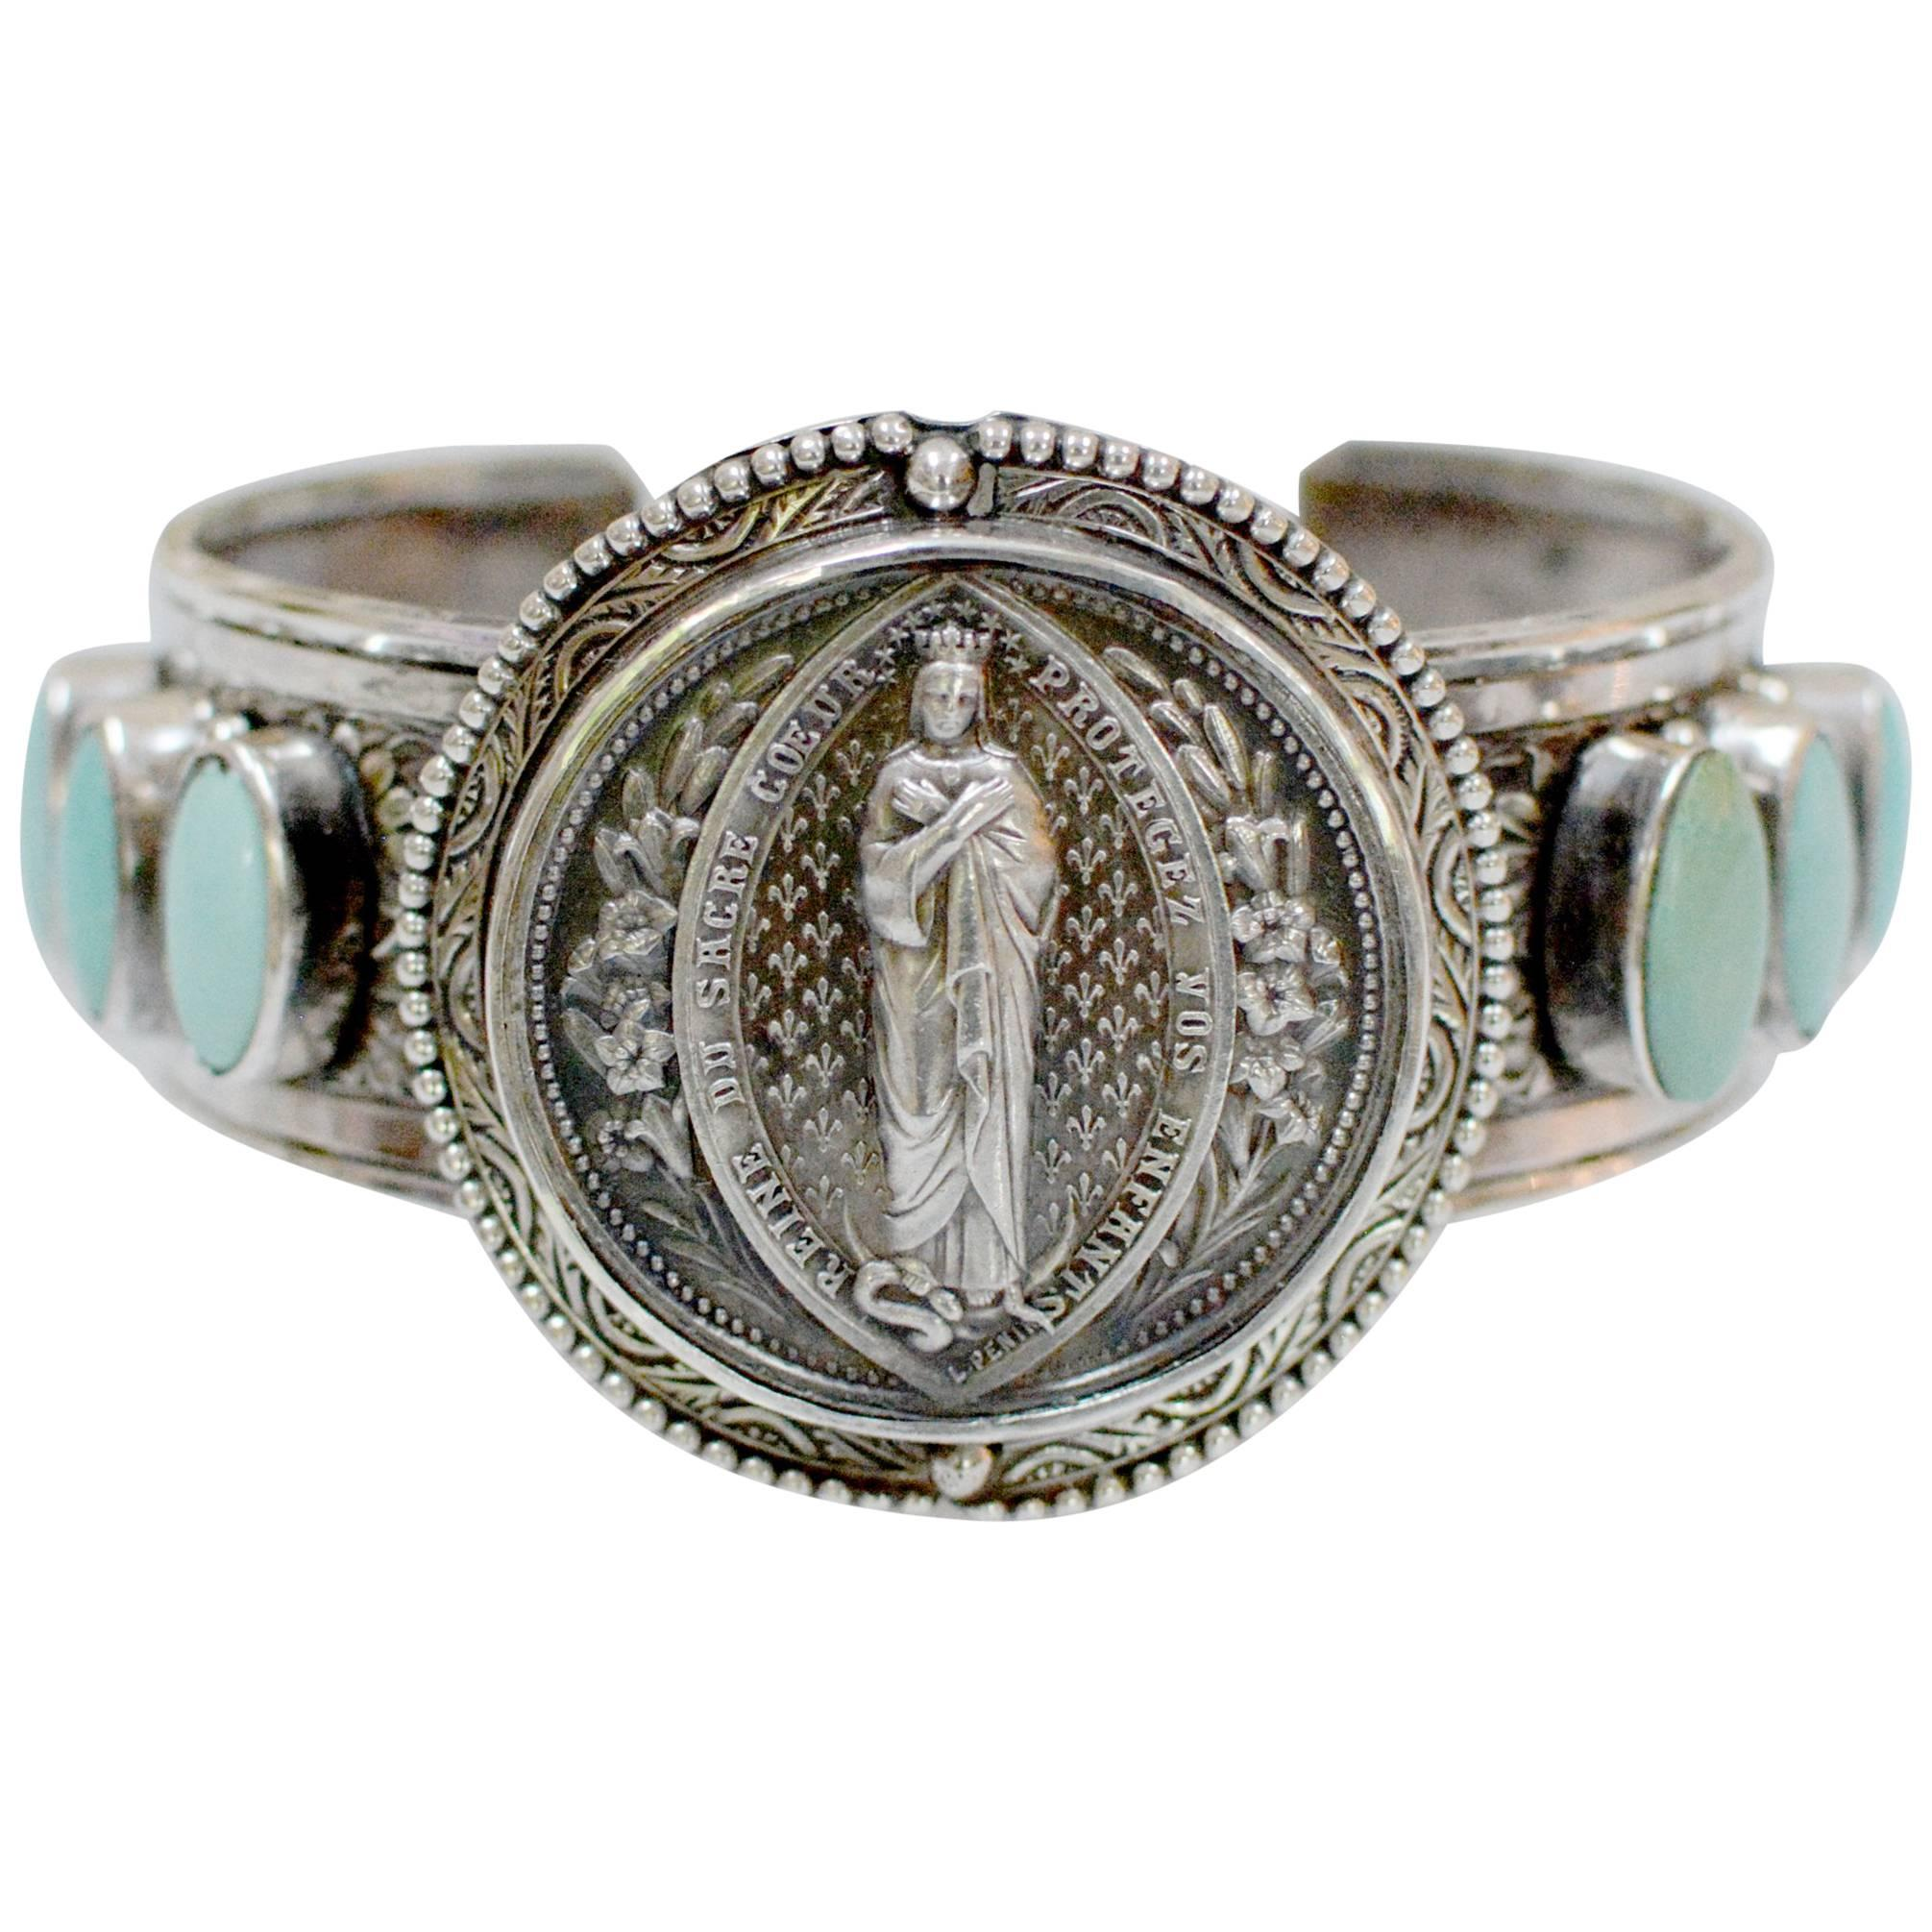 Jill Garber Nineteenth Century French Sacred Heart with Turquoise Cuff Bracelet